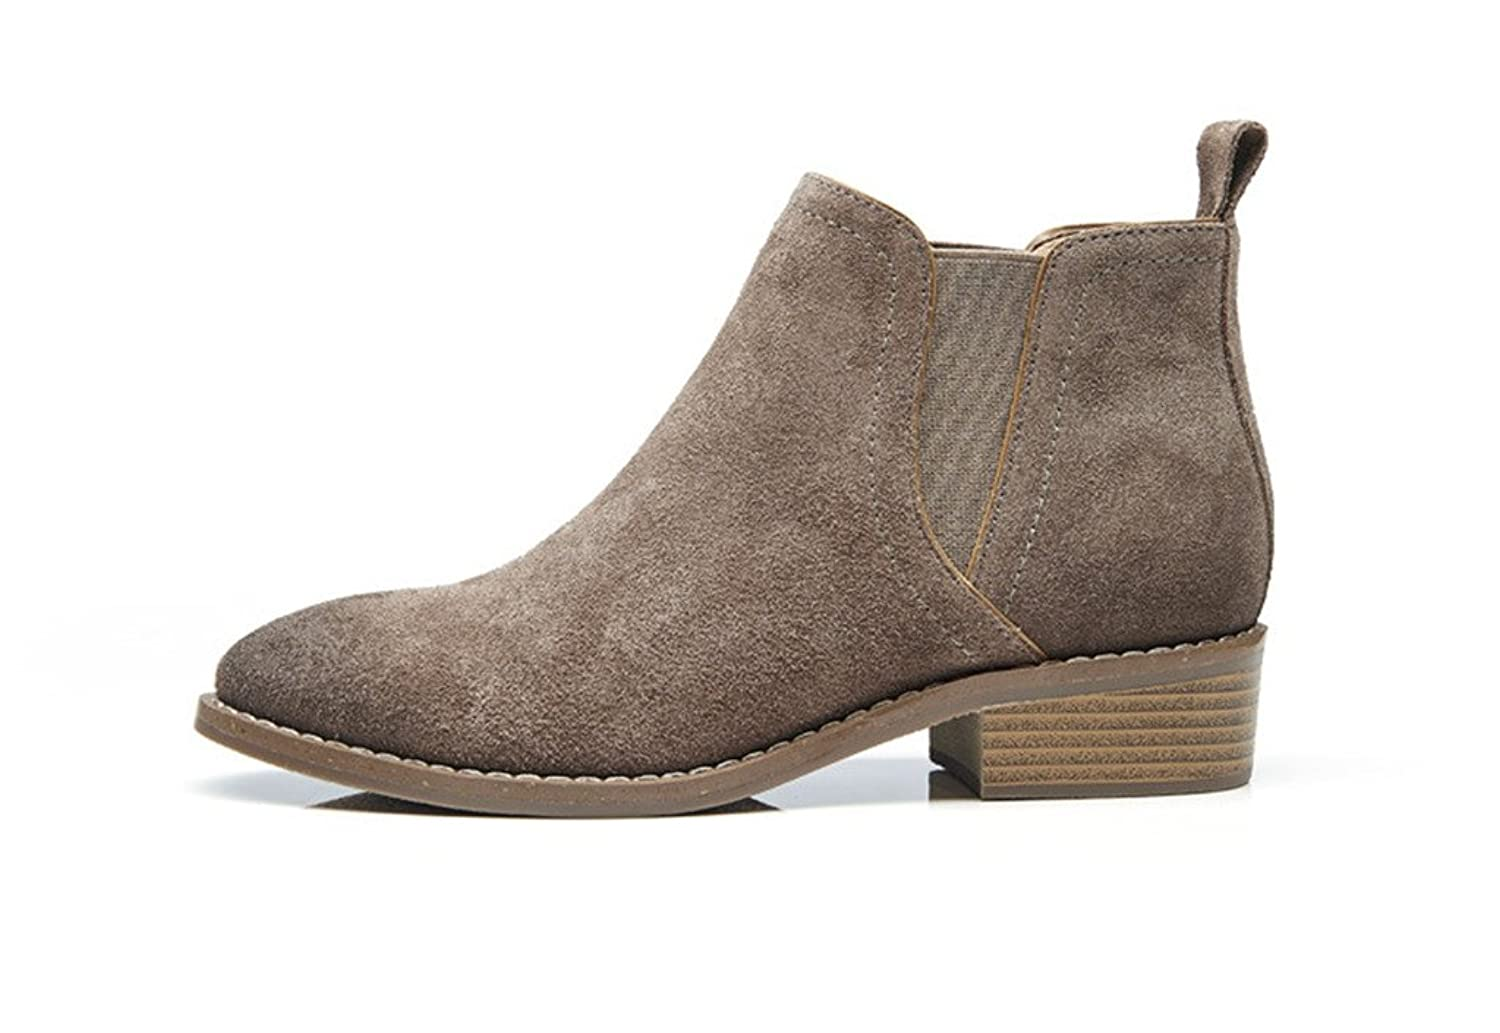 U-lite Womens Fall Winter Classic Comfortable Suede leather Chelsea ankle boots Women booties